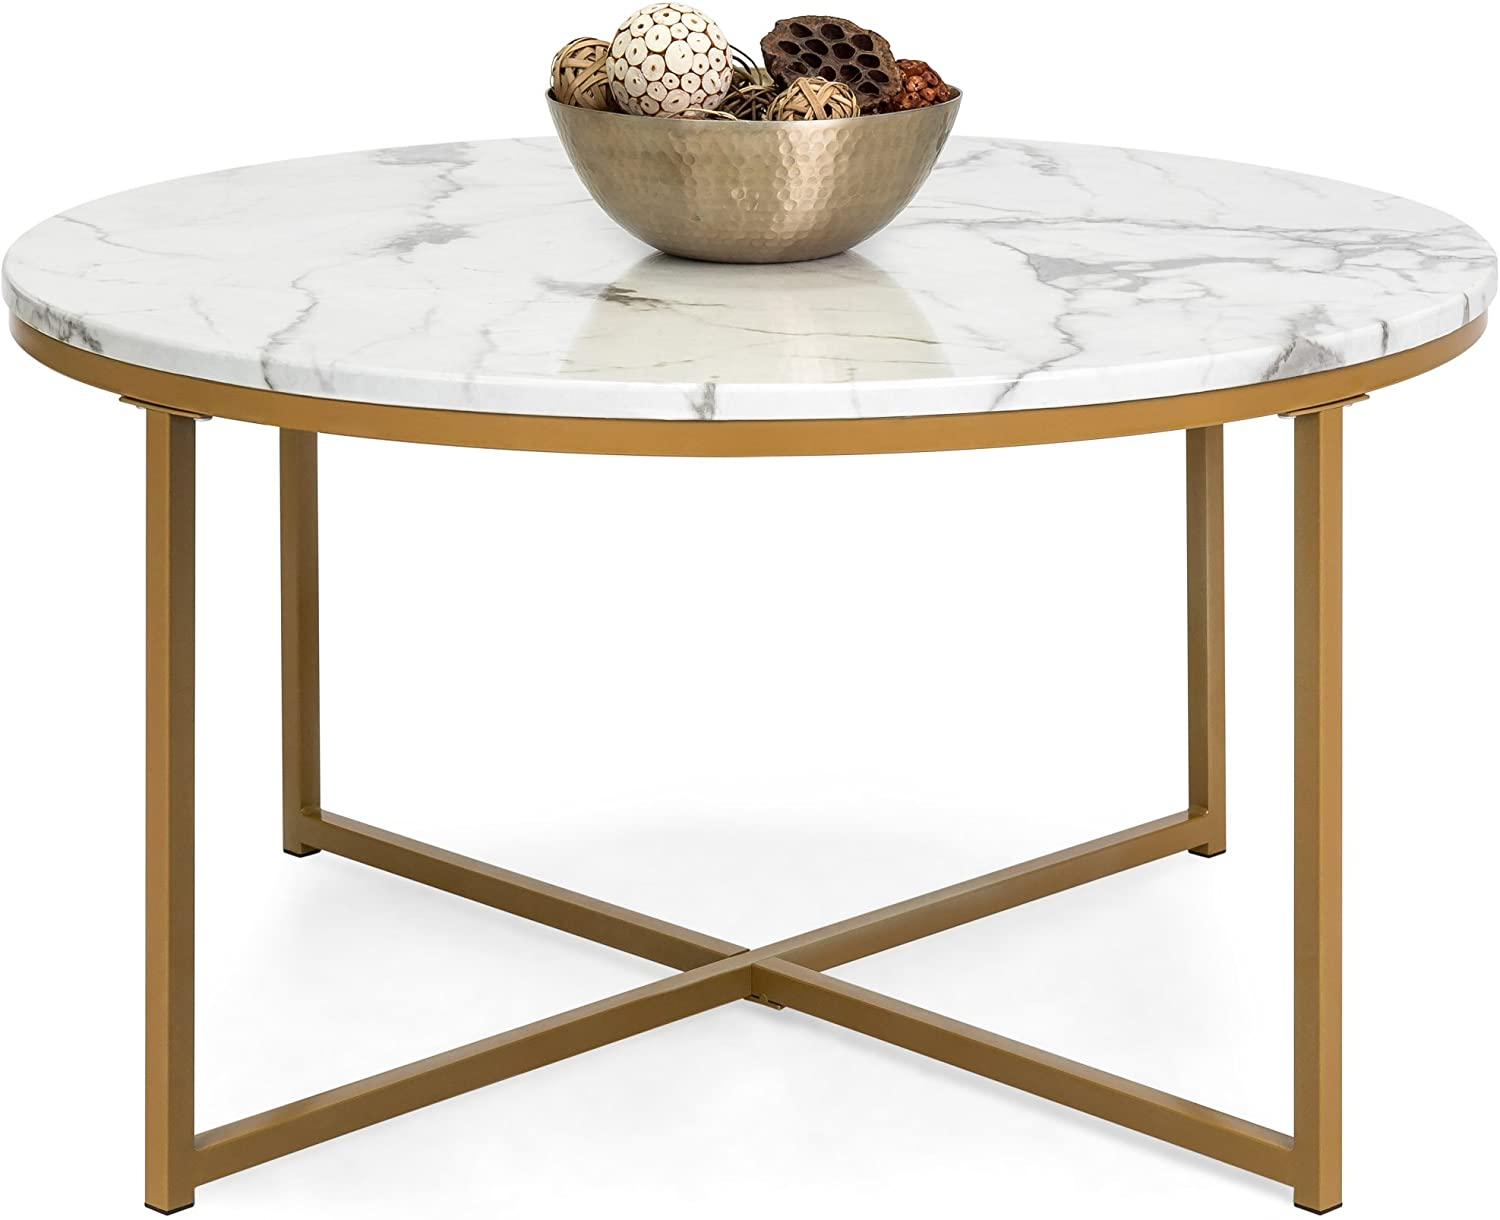 Oval Glass Top Coffee Table